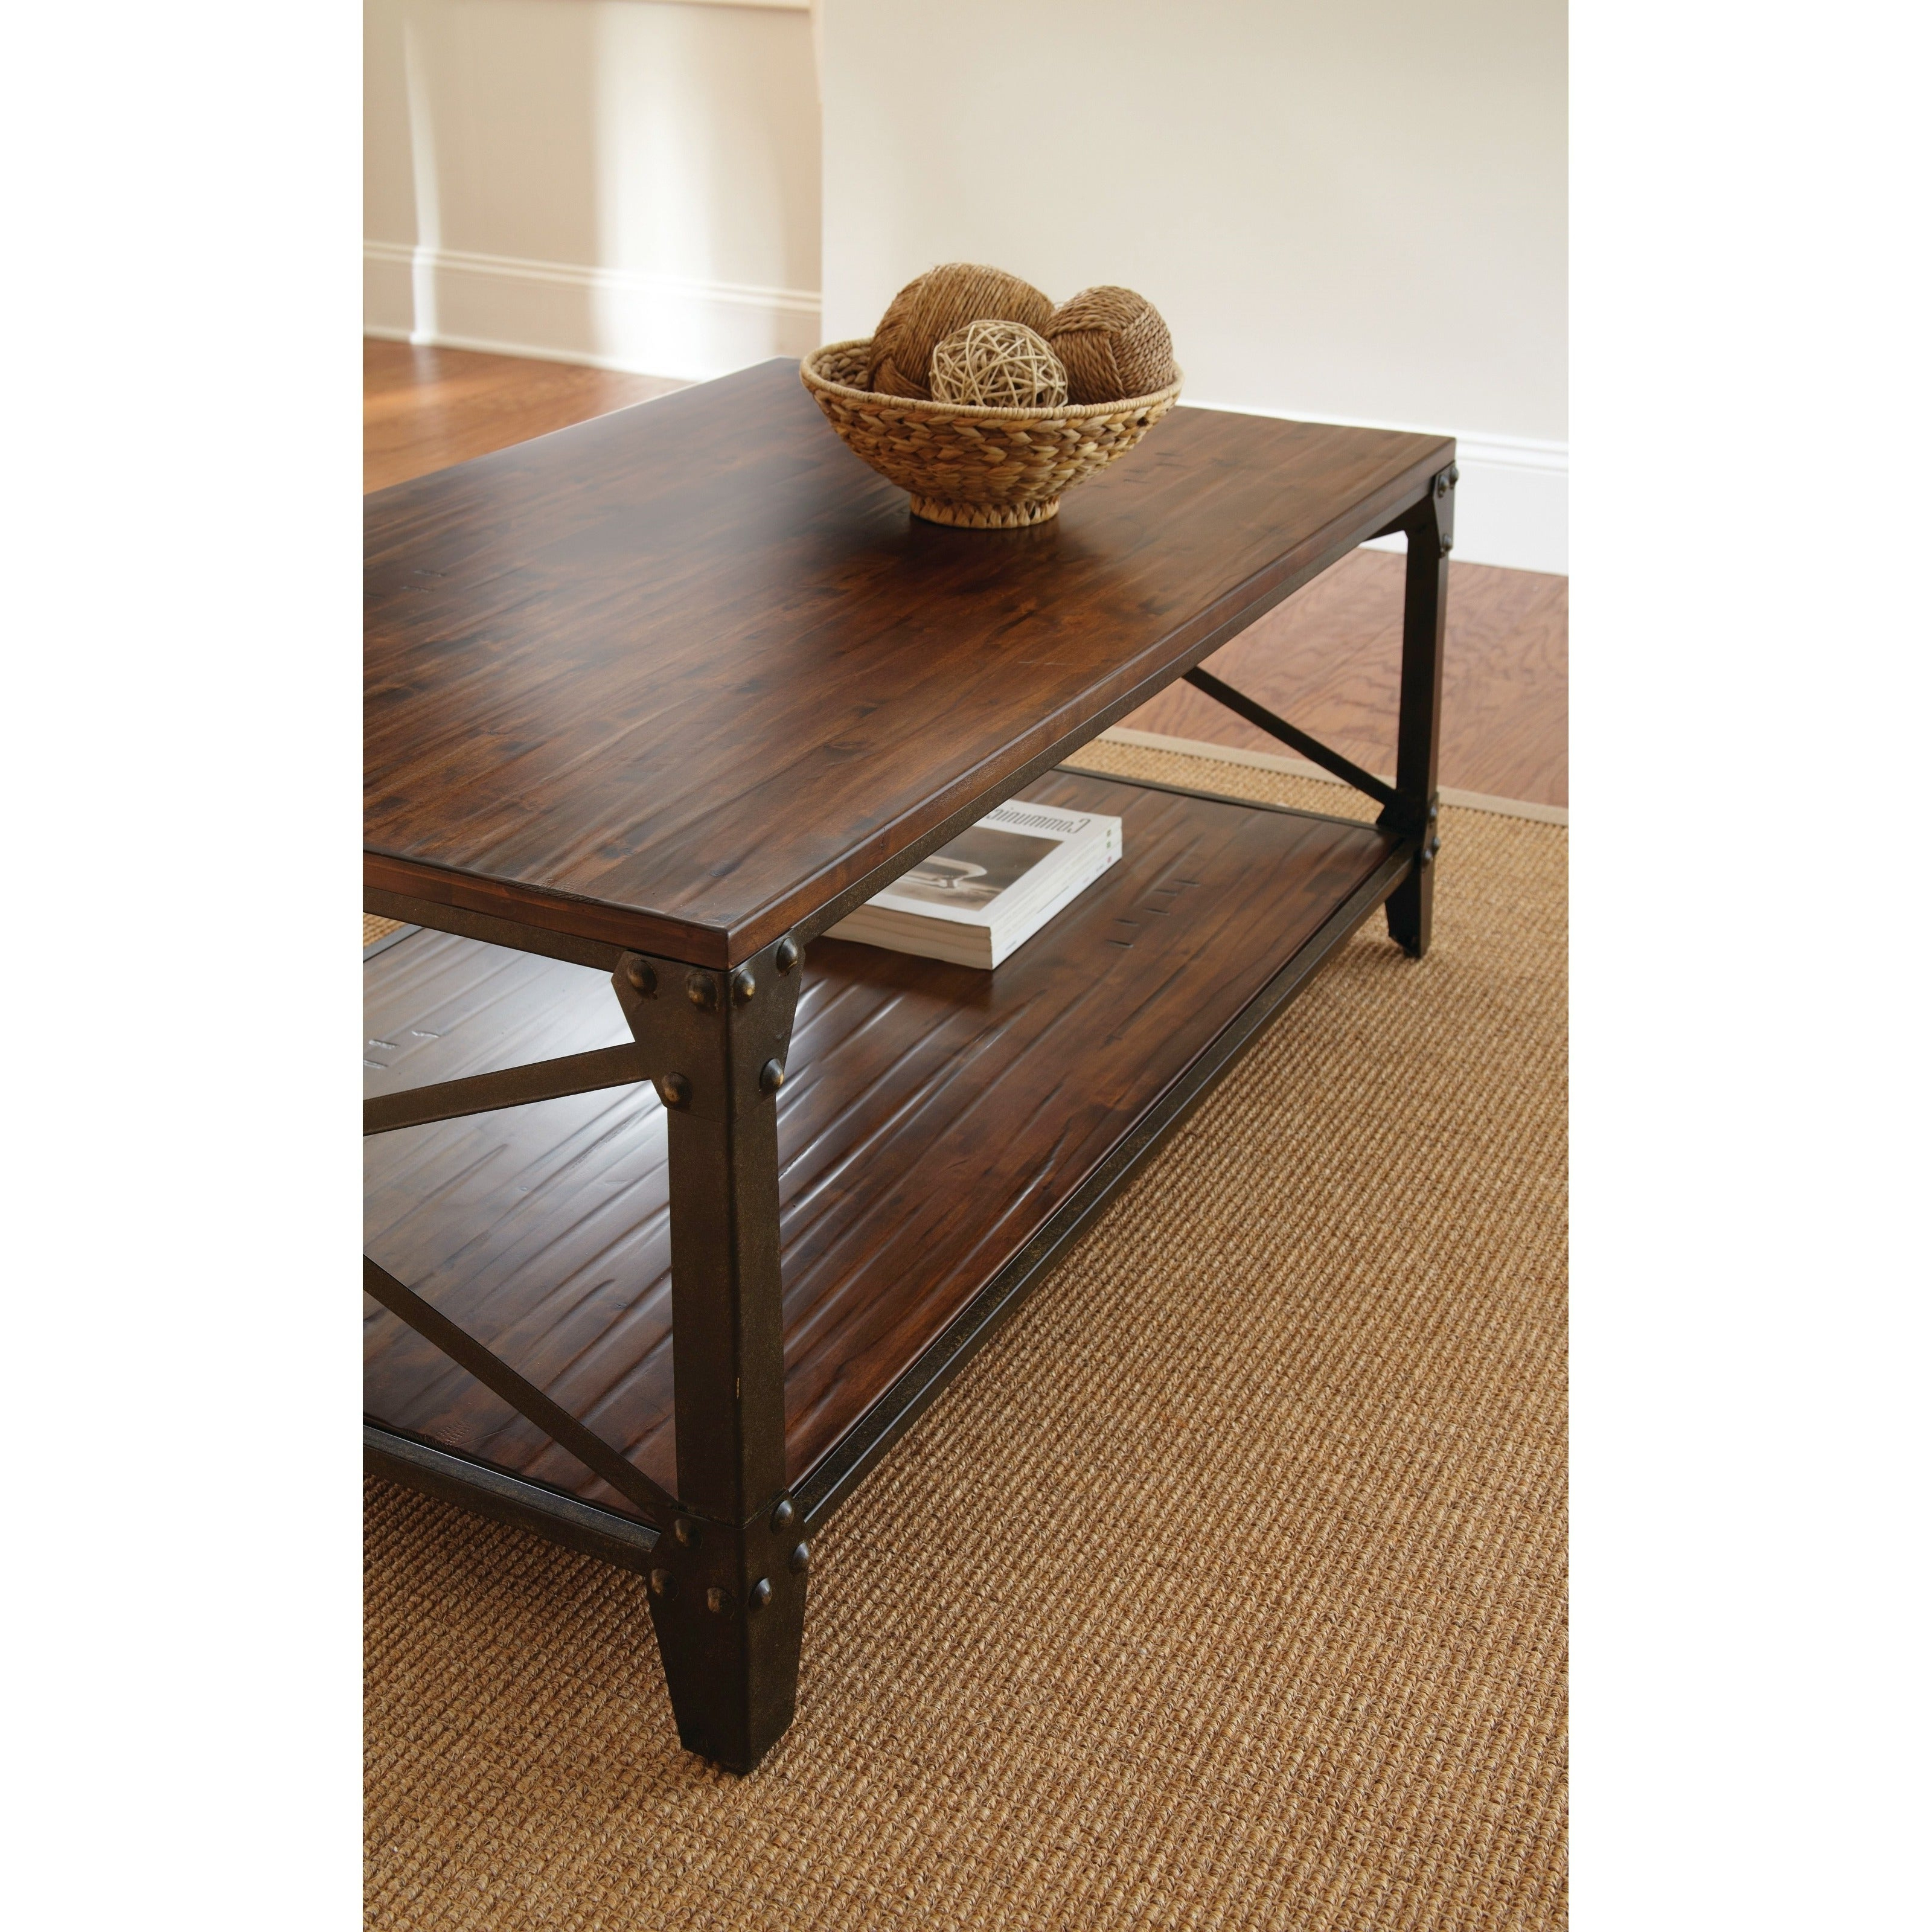 Fashionable Carbon Loft Fischer Brown Solid Birch And Iron Rustic Coffee Tables Inside Carbon Loft Fischer Brown Solid Birch And Iron Rustic Coffee Table (View 8 of 20)